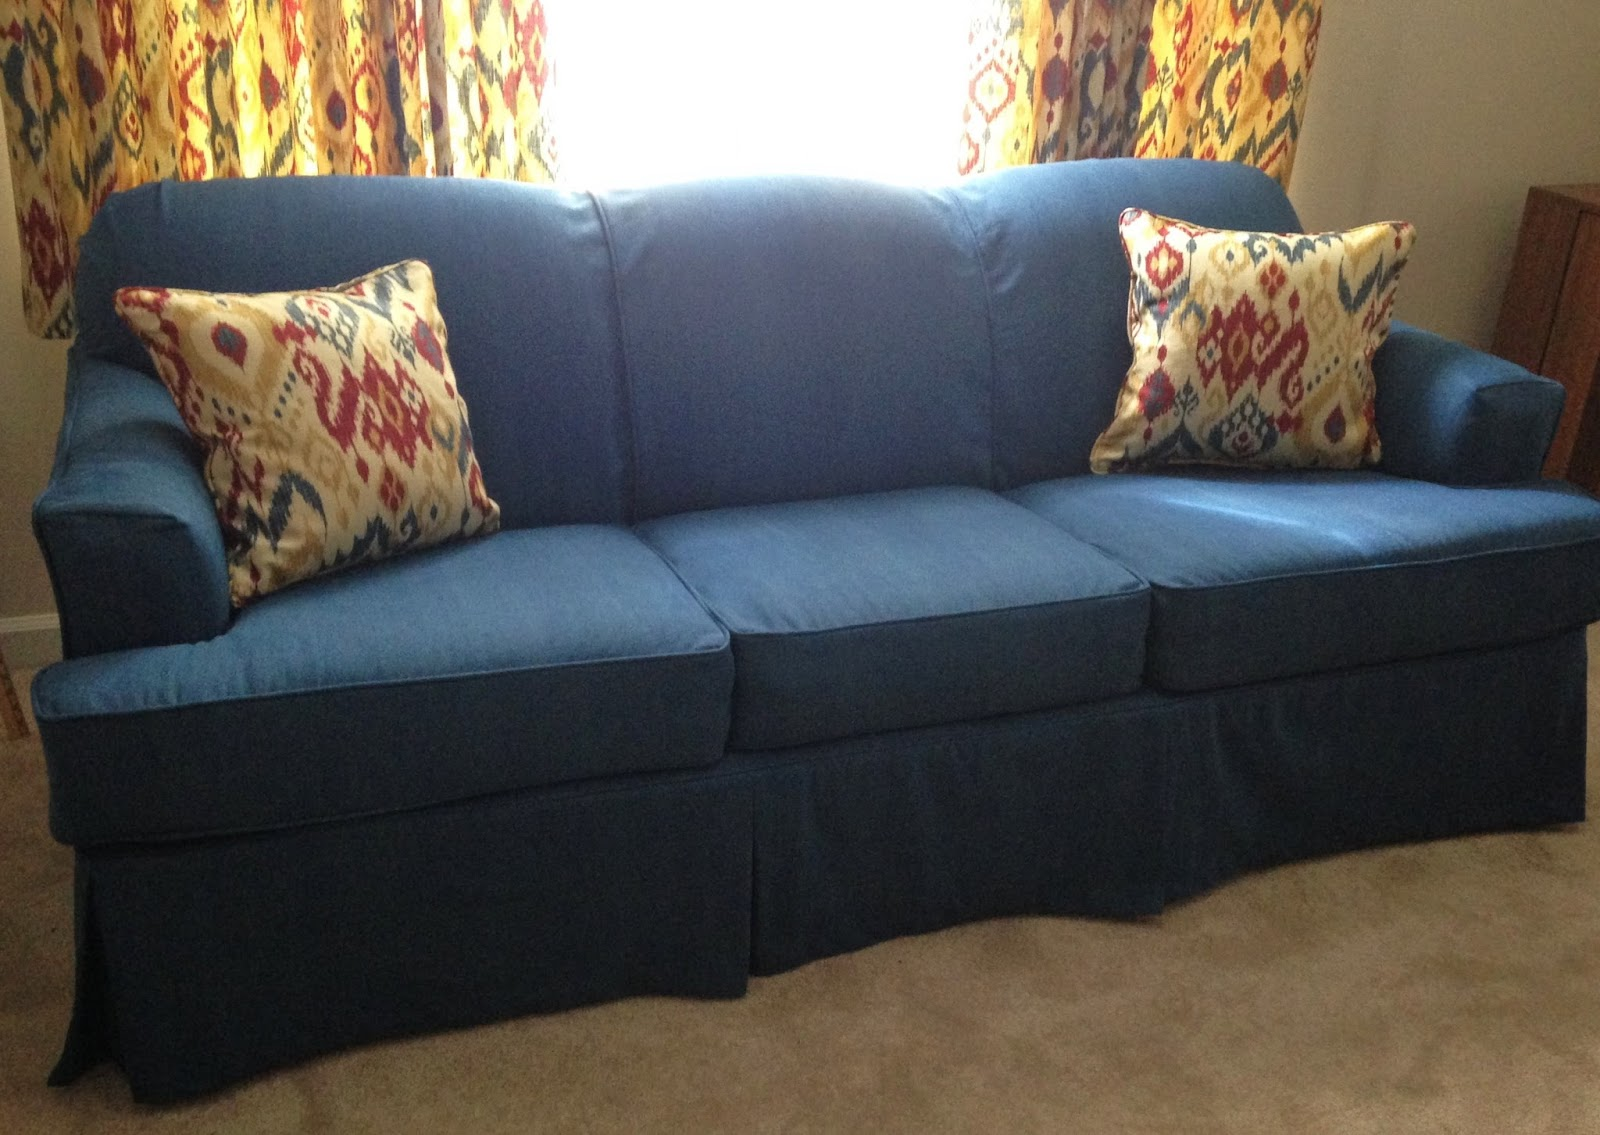 Pam Morris Sews: Denim On A Sleeper Sofa